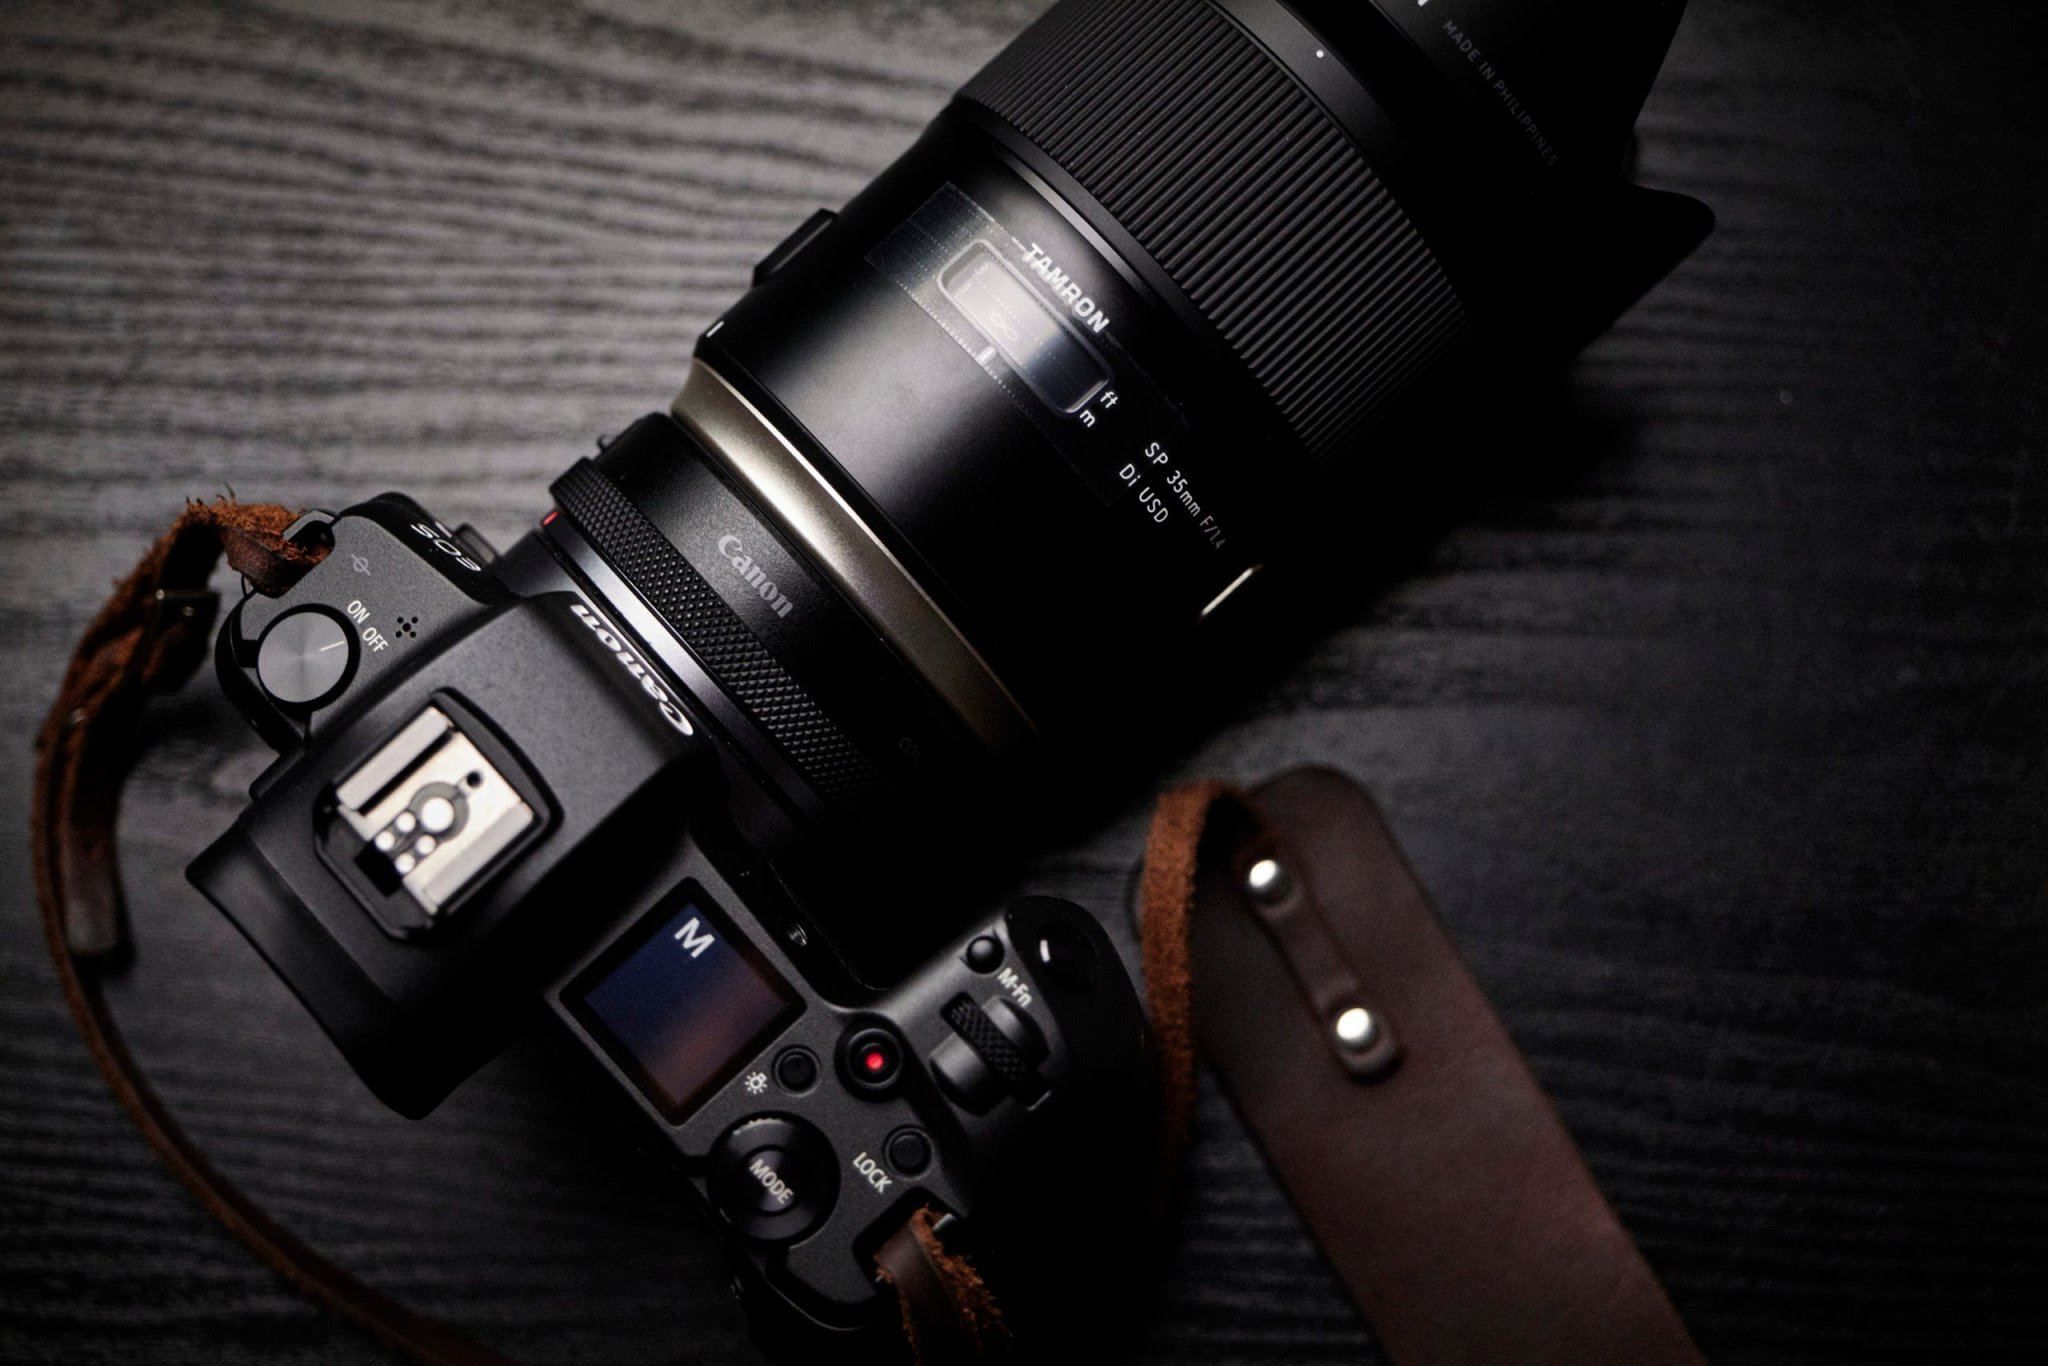 Review: Tamron SP 35mm f1.4 Di USD (A Great 35mm for Portraits)